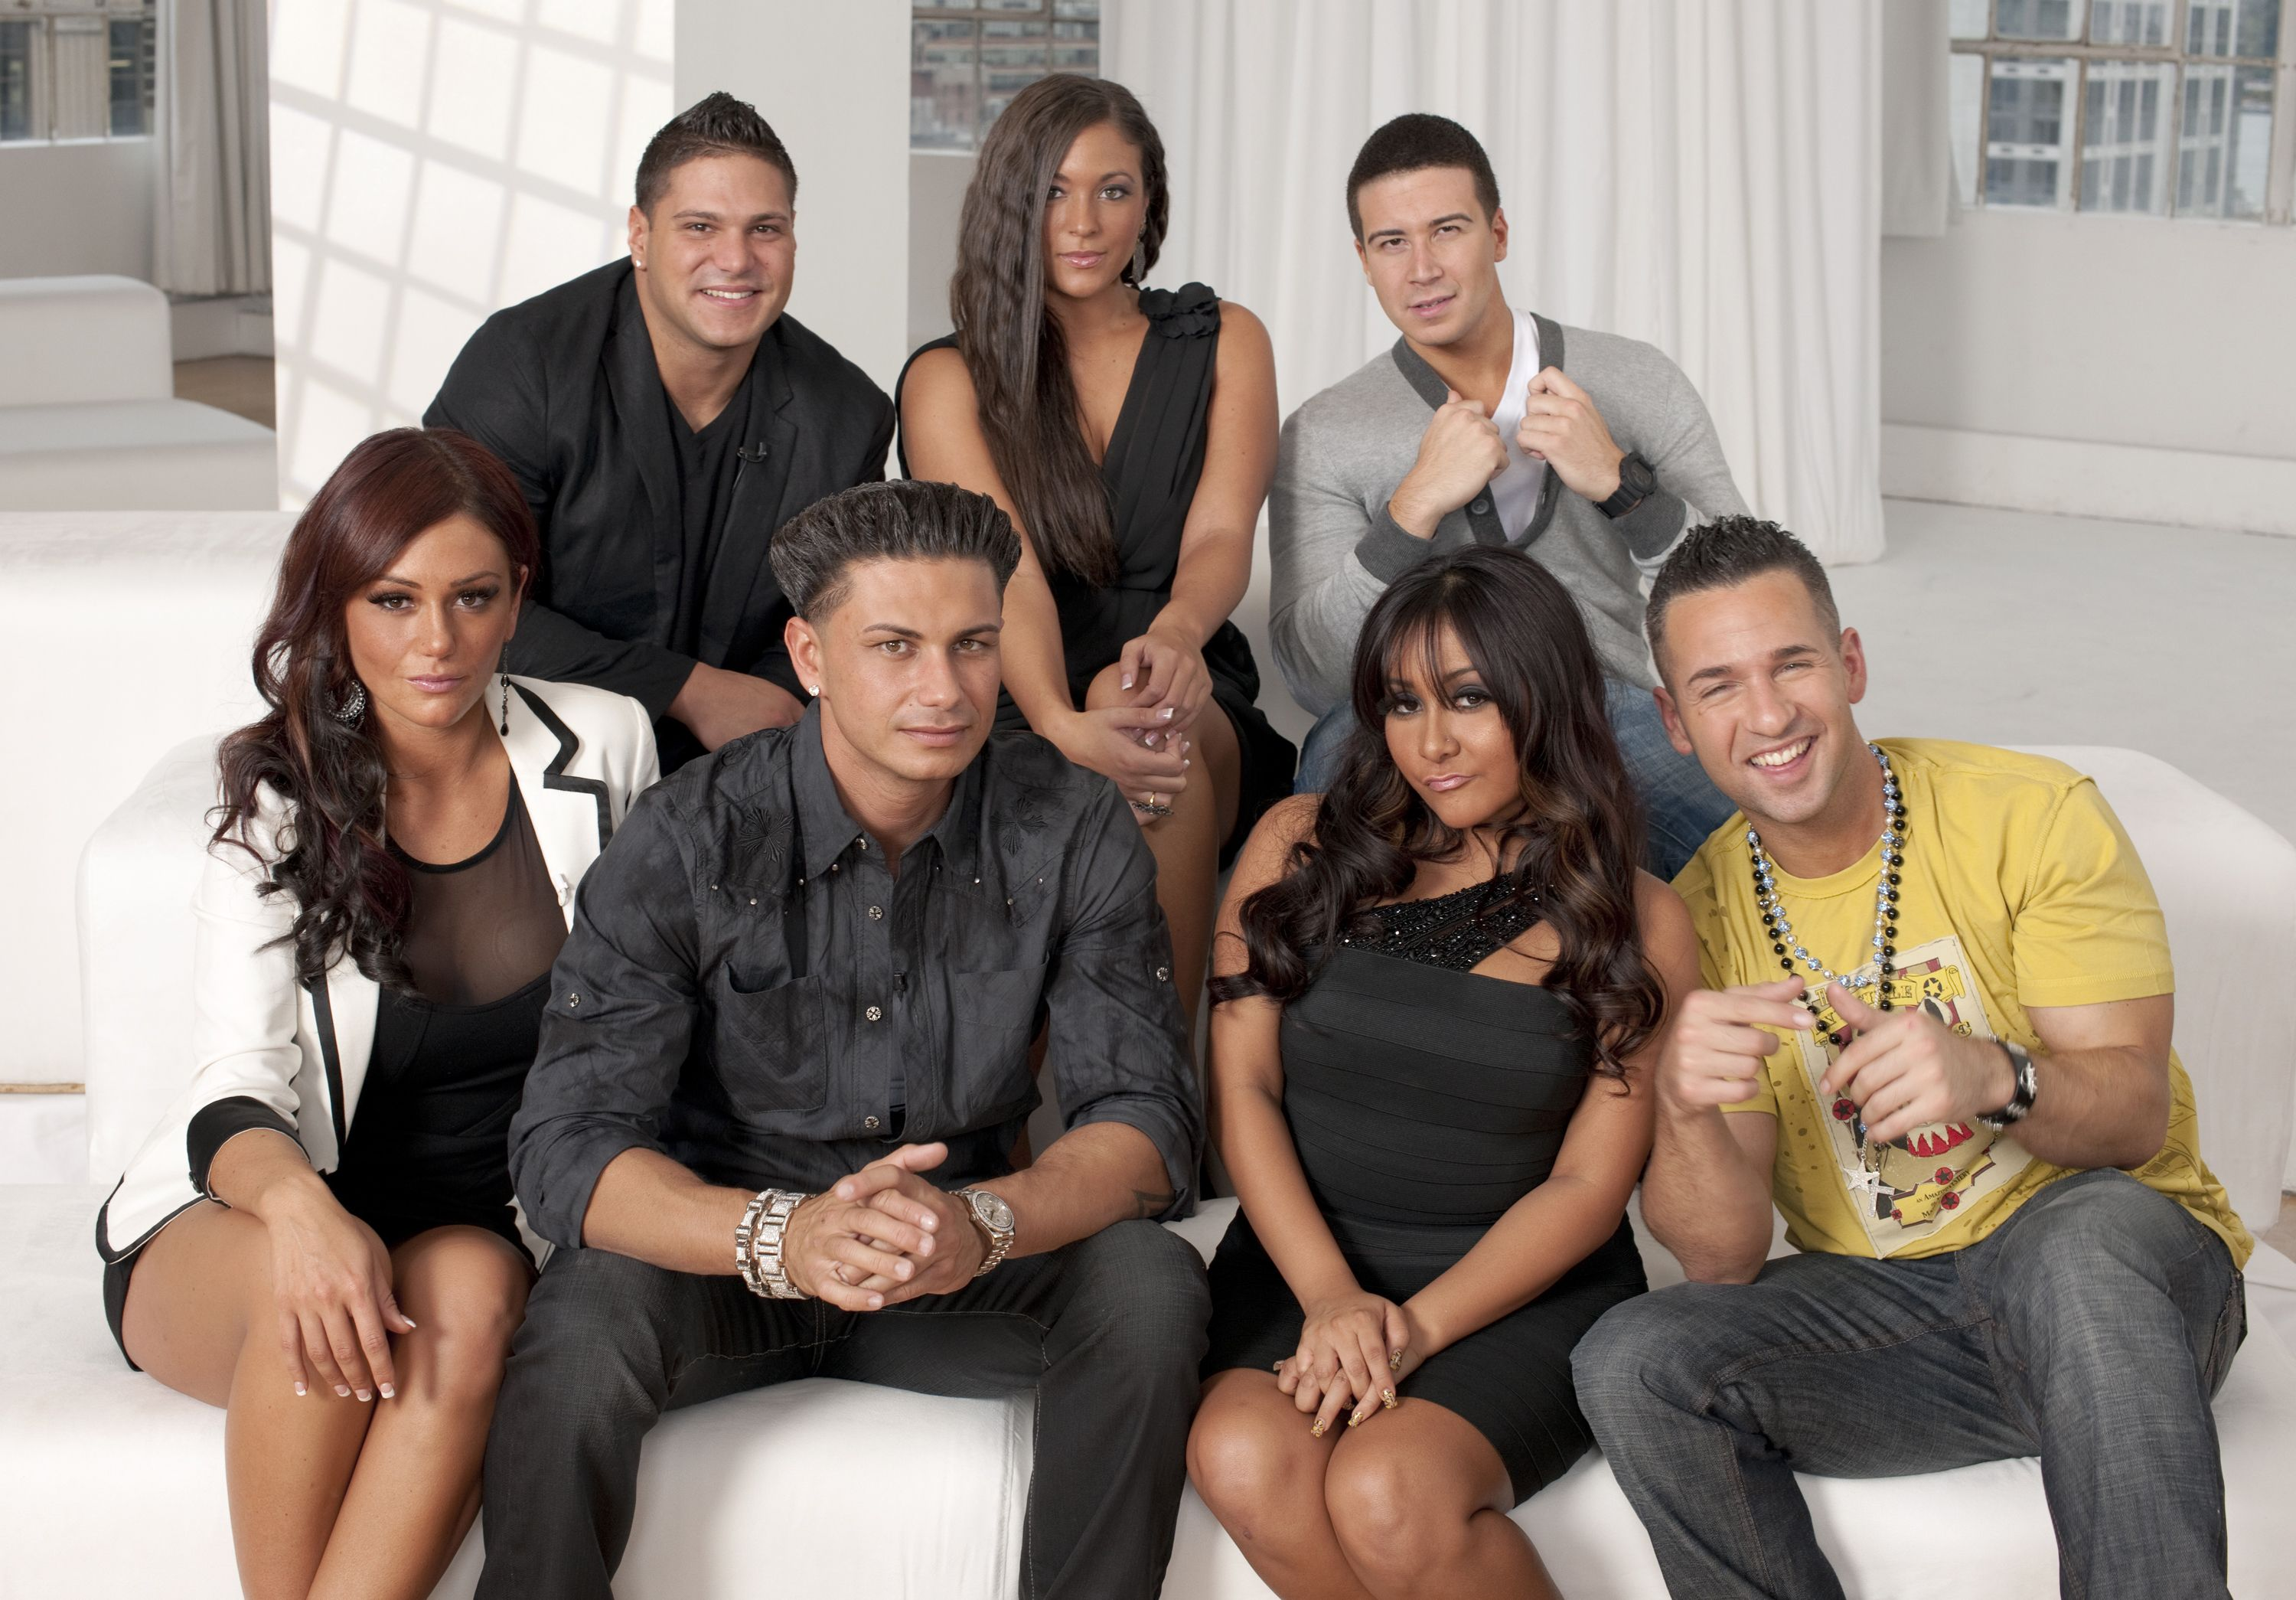 Angelina Jersey Shore Sexy jersey shore family reunion facts - 20 things you didn't